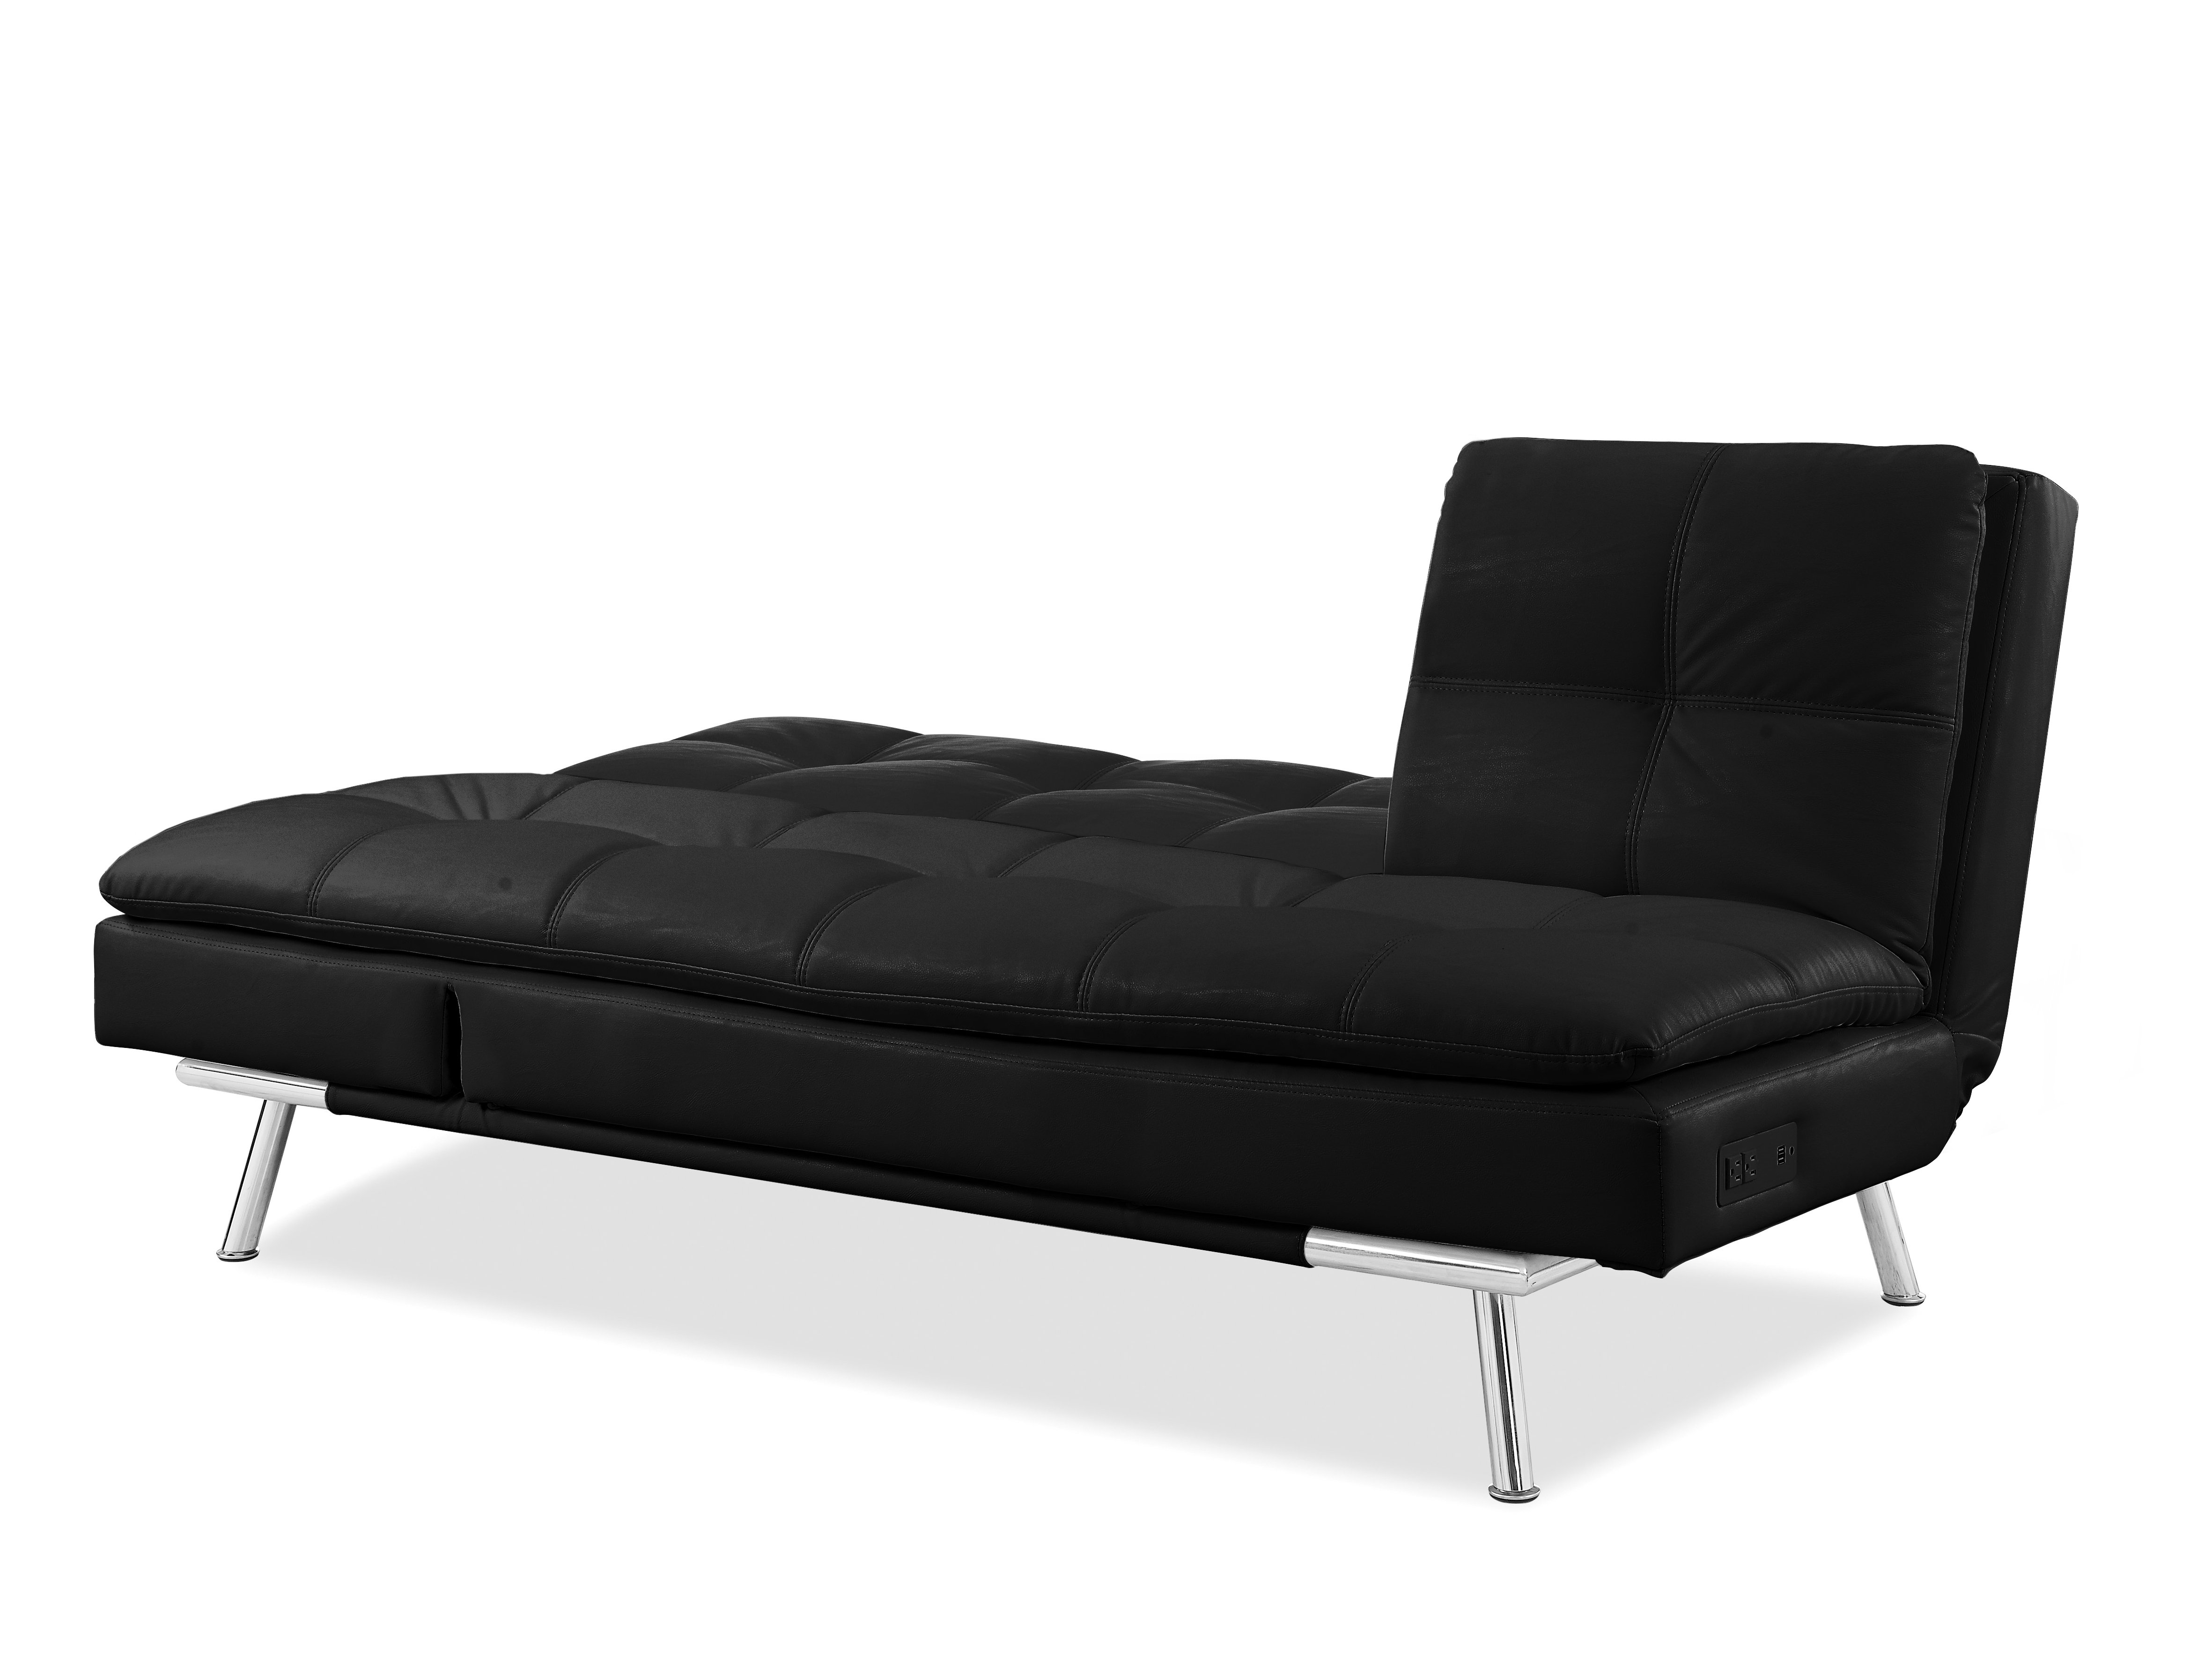 Palermo Convertible Sofa Black by Serta Lifestyle